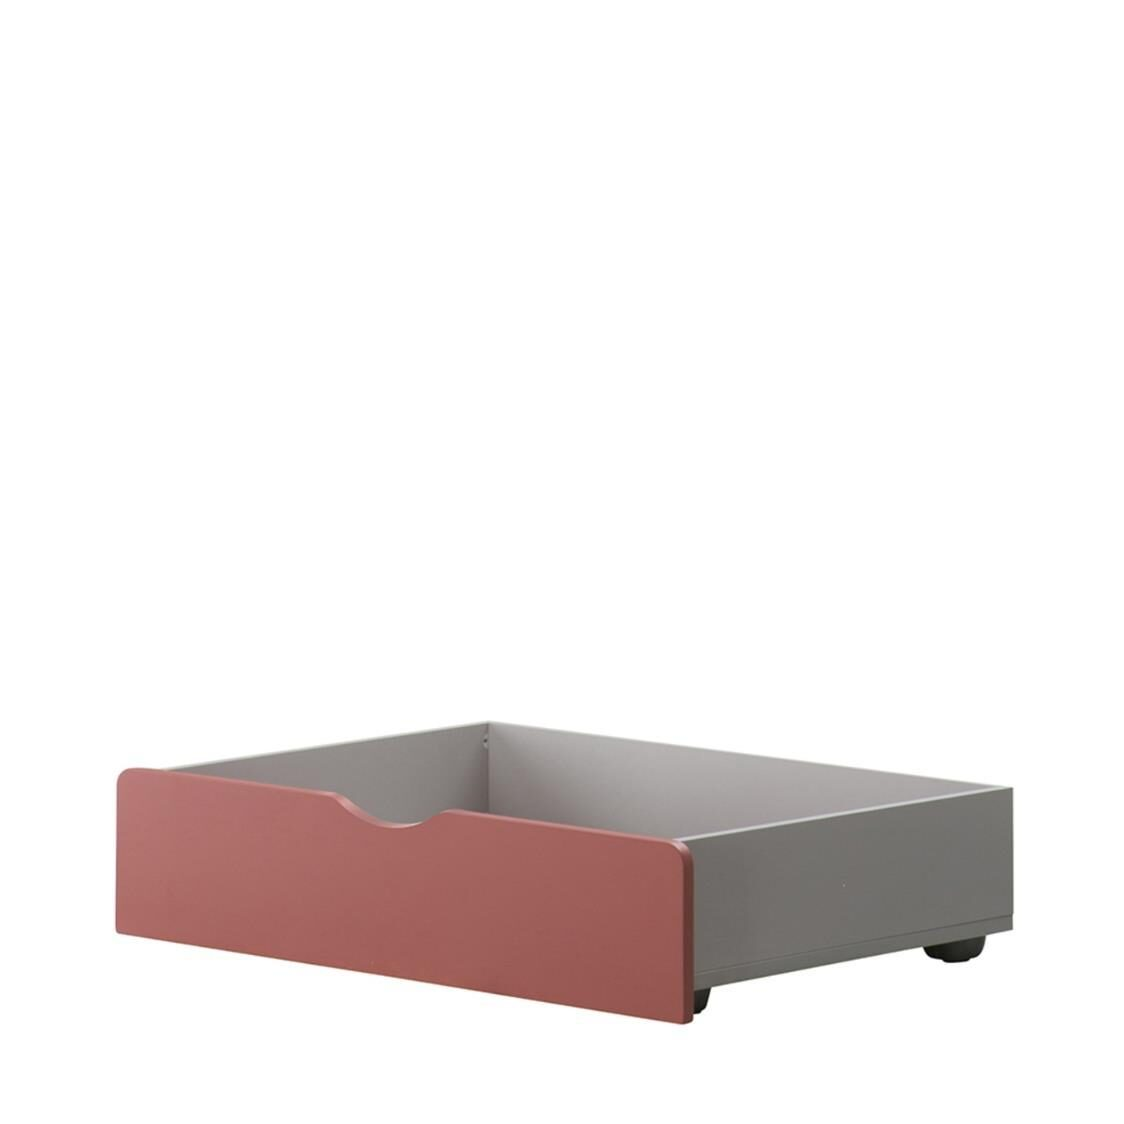 Iloom Tinkle Pop Bed Drawer KR Red